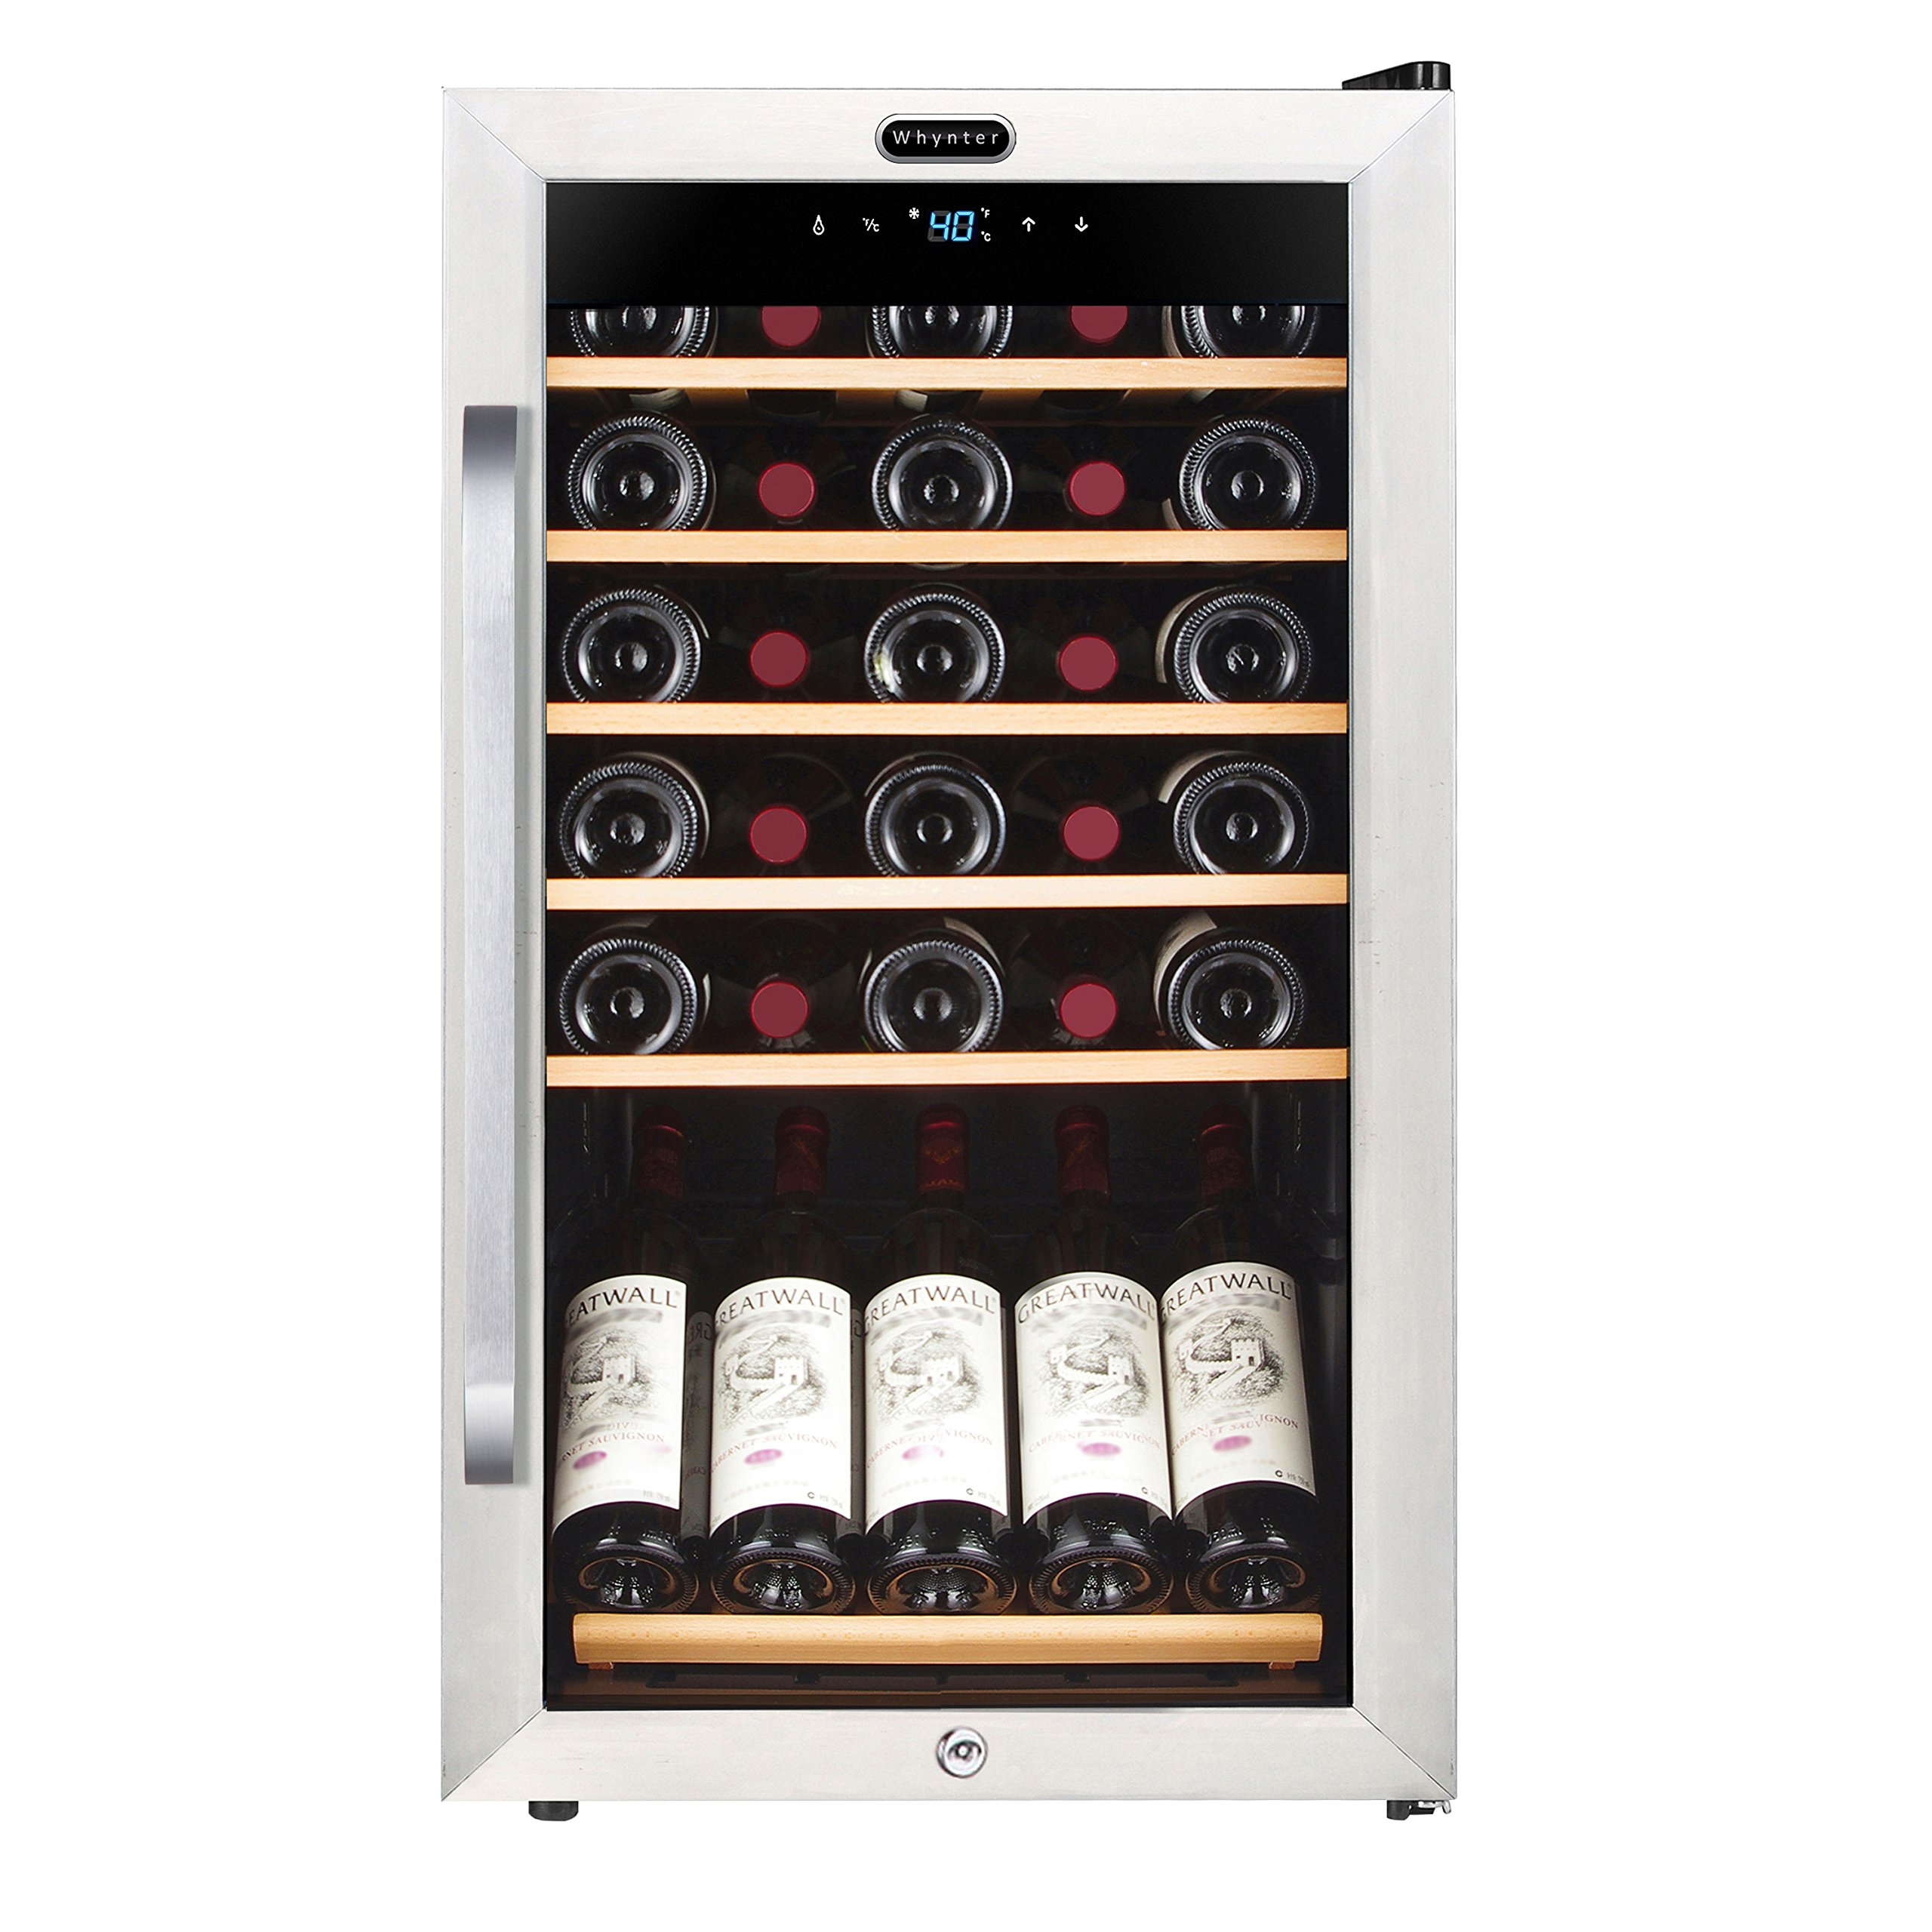 Whynter FWC-341TS 34 Bottle Freestanding Wine Refrigerator with Display Shelf and Digital Control, Stainless Steel, One Size by Whynter